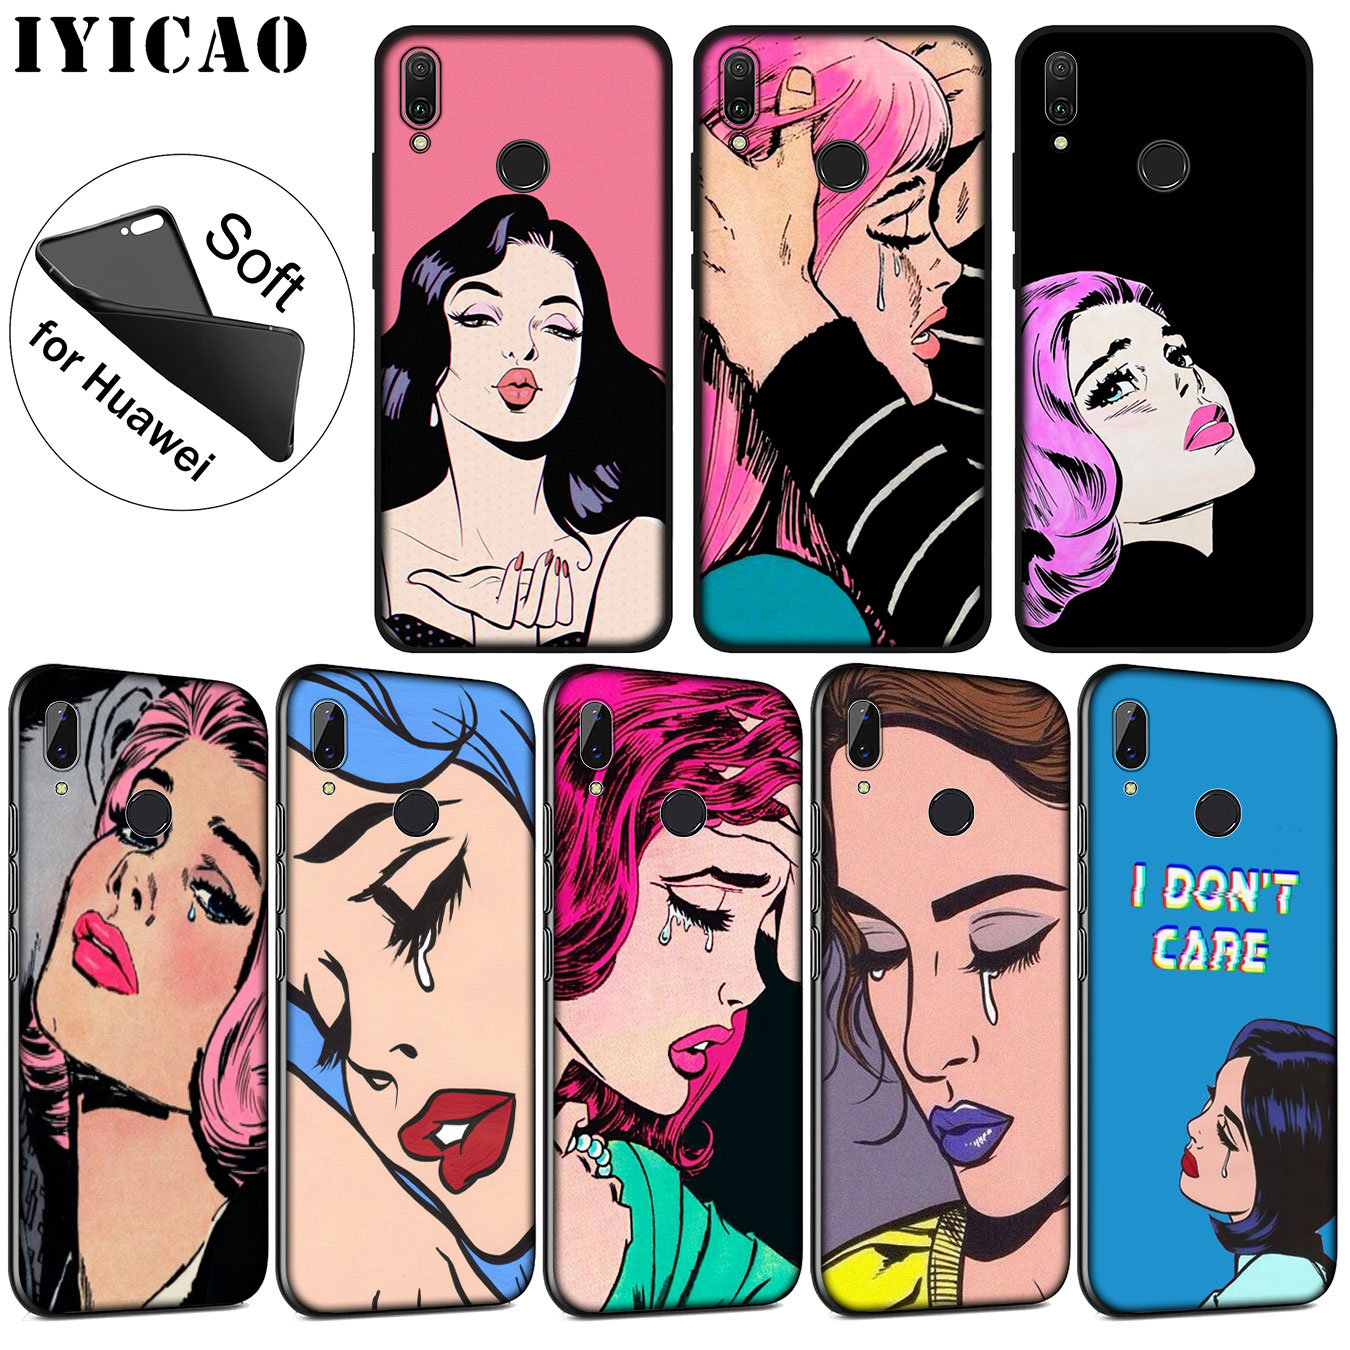 Phone Bags & Cases Cellphones & Telecommunications Binful Bowling Pattern Transparent Hard Phone Case Cover For Xiaomi Mi Redmi Note 5 4 3 4x 5a Plus 6 Pro 64g S2 2019 Latest Style Online Sale 50%